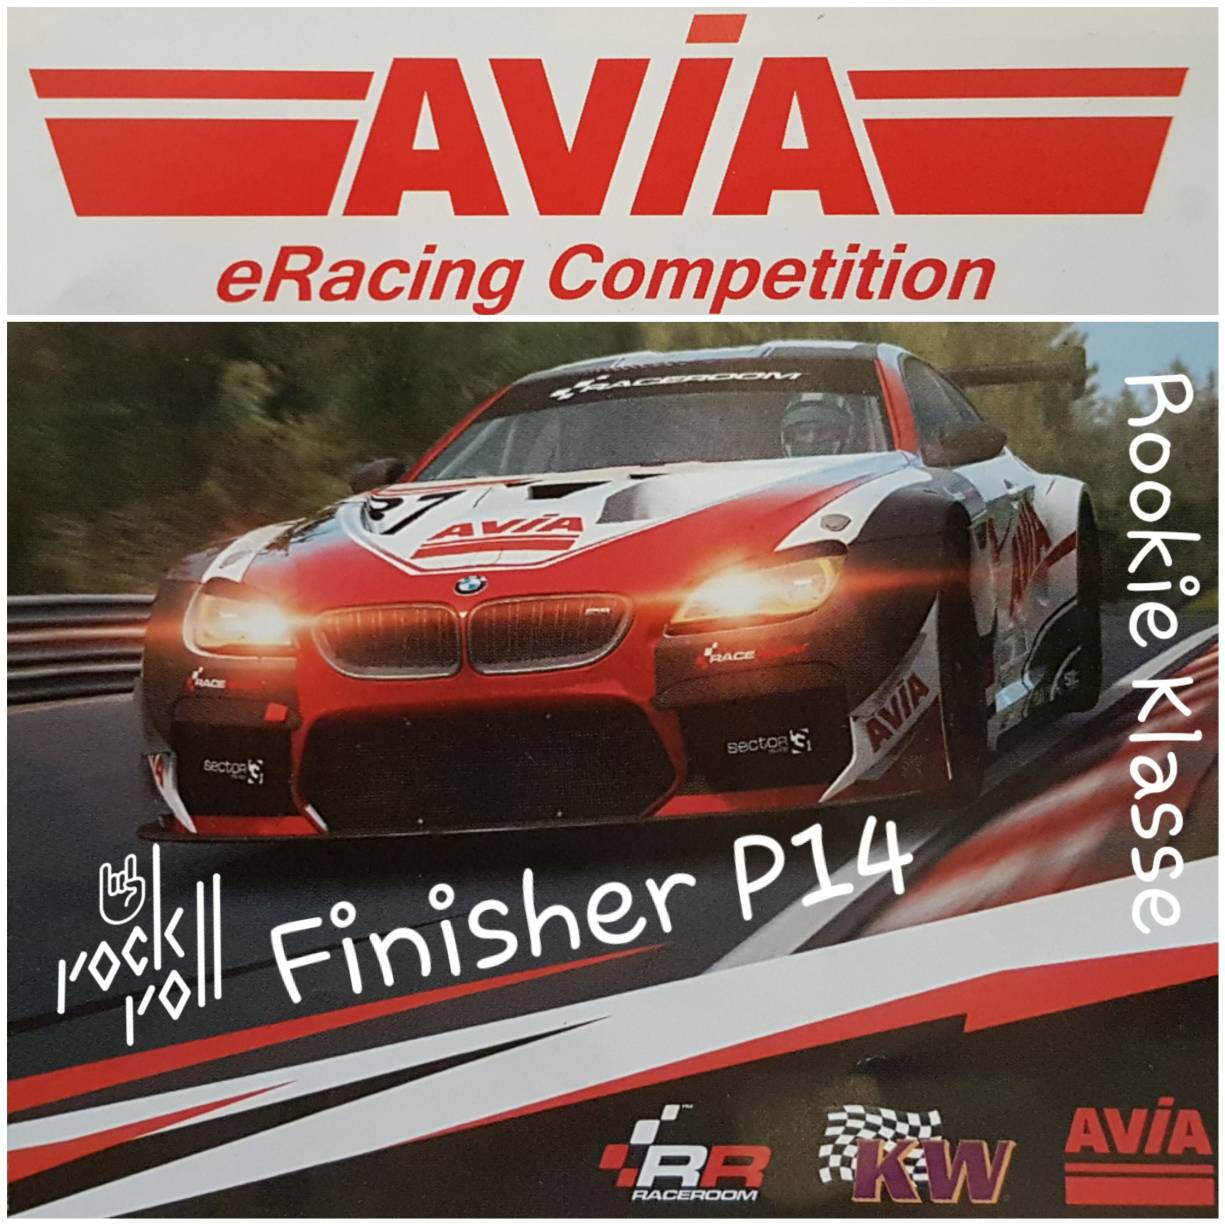 Avia eRacing Competition Finisher P14